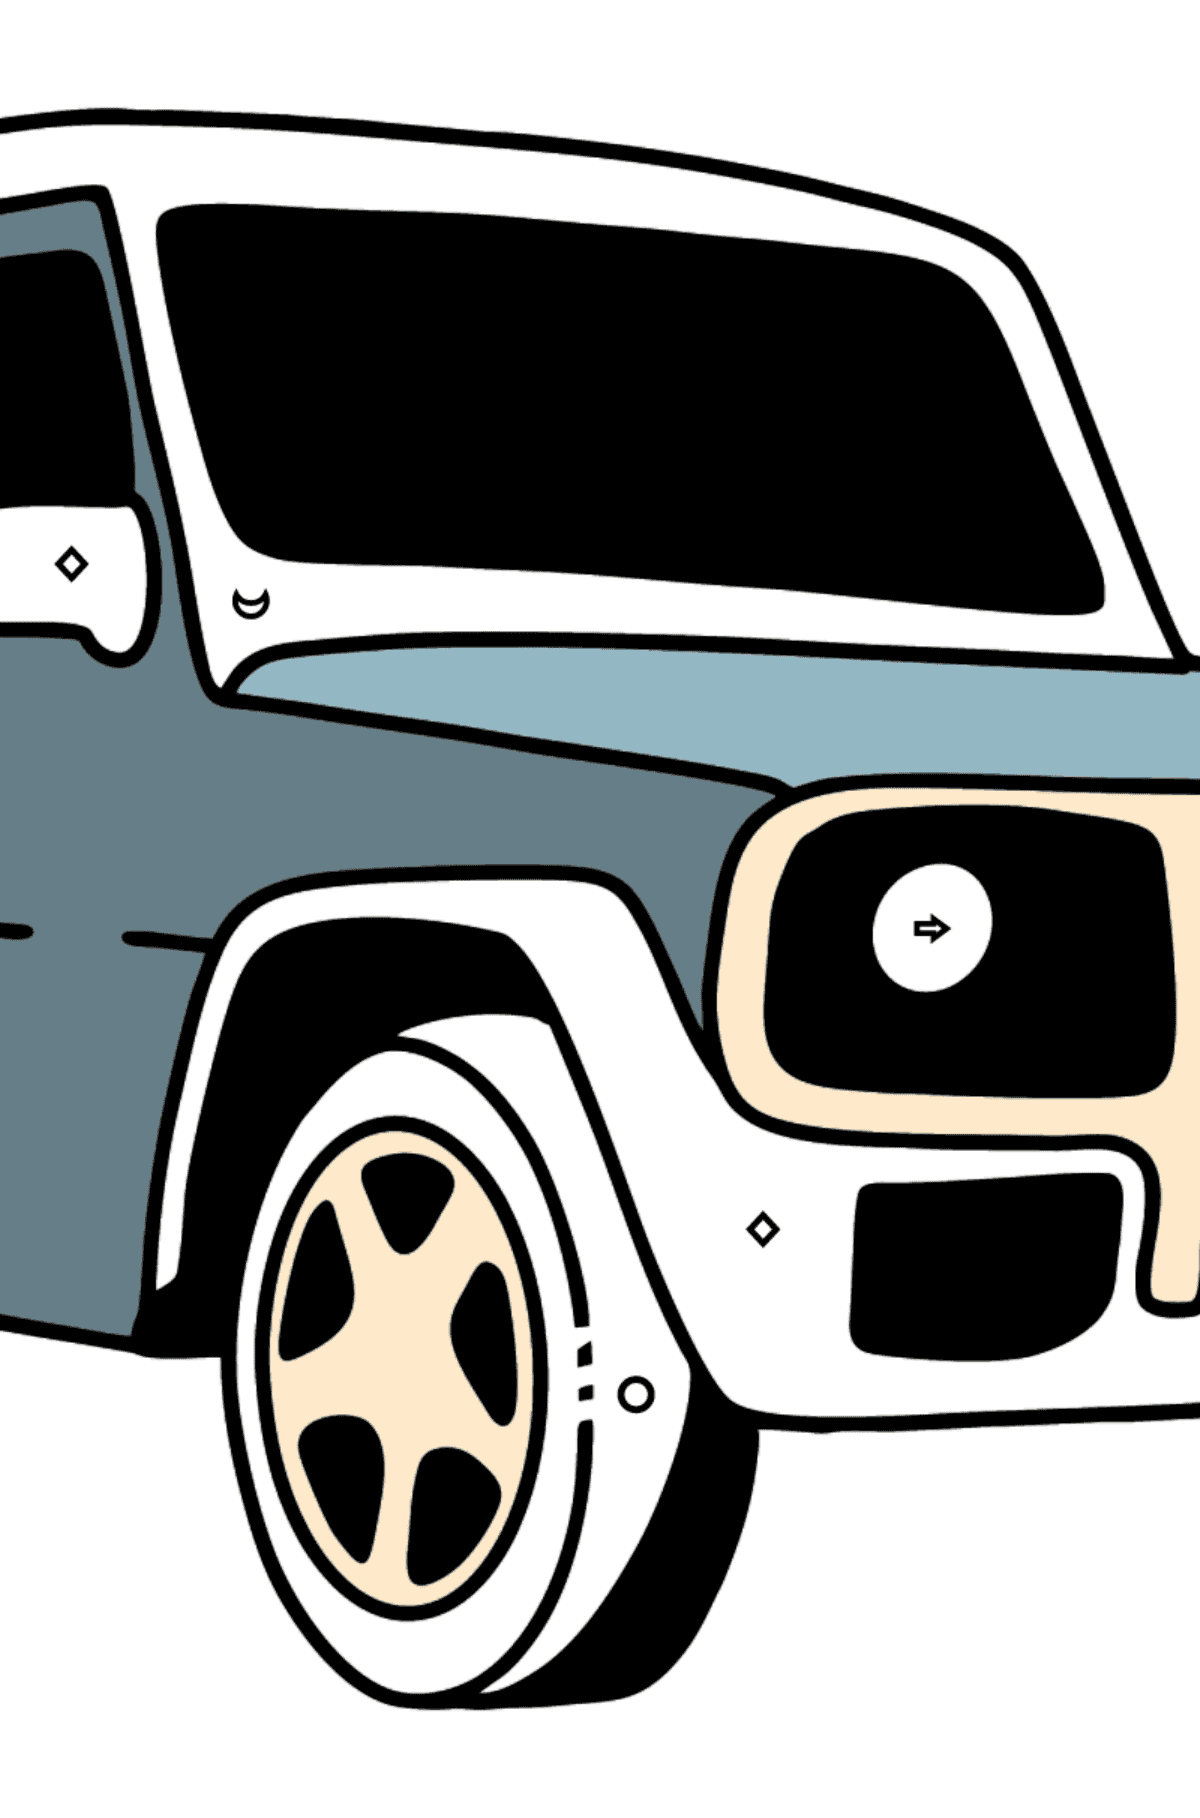 Mercedes-Benz G-Class SUV coloring page - Coloring by Geometric Shapes for Kids